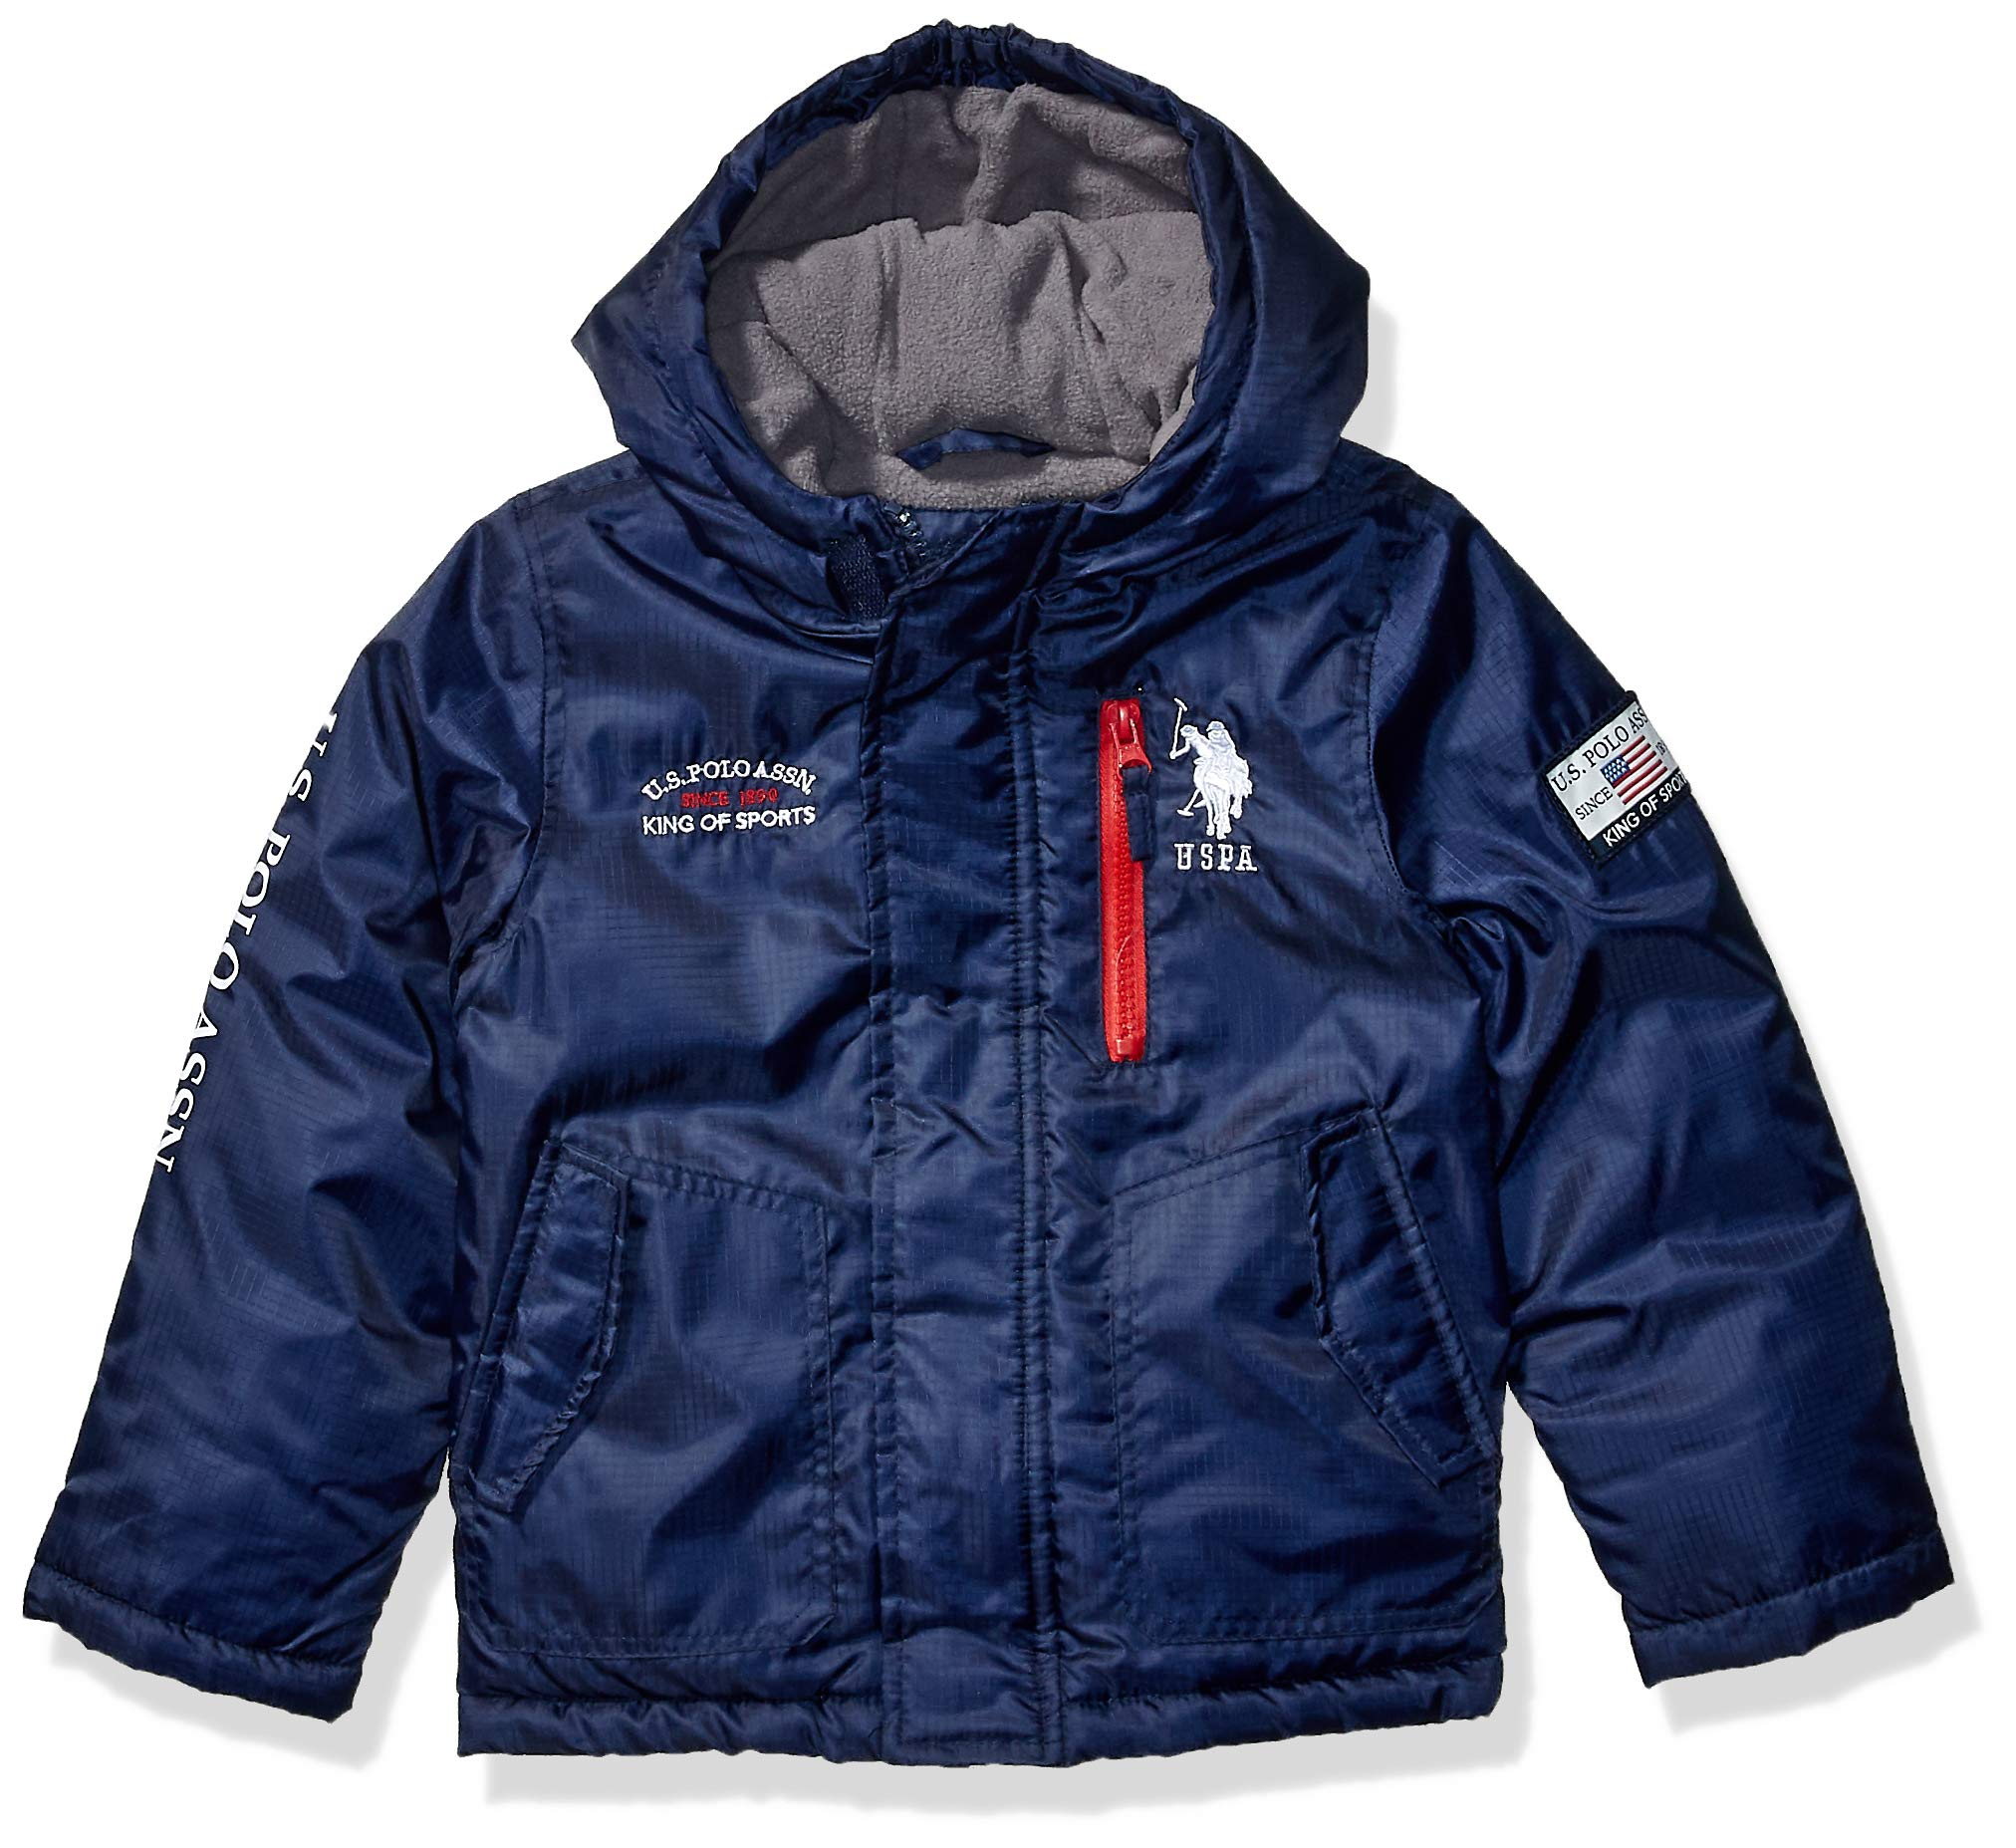 US Polo Association Boys' Toddler Fashion Outerwear Jacket (More Styles Available), Primo Navy, 2T by U.S. Polo Assn.